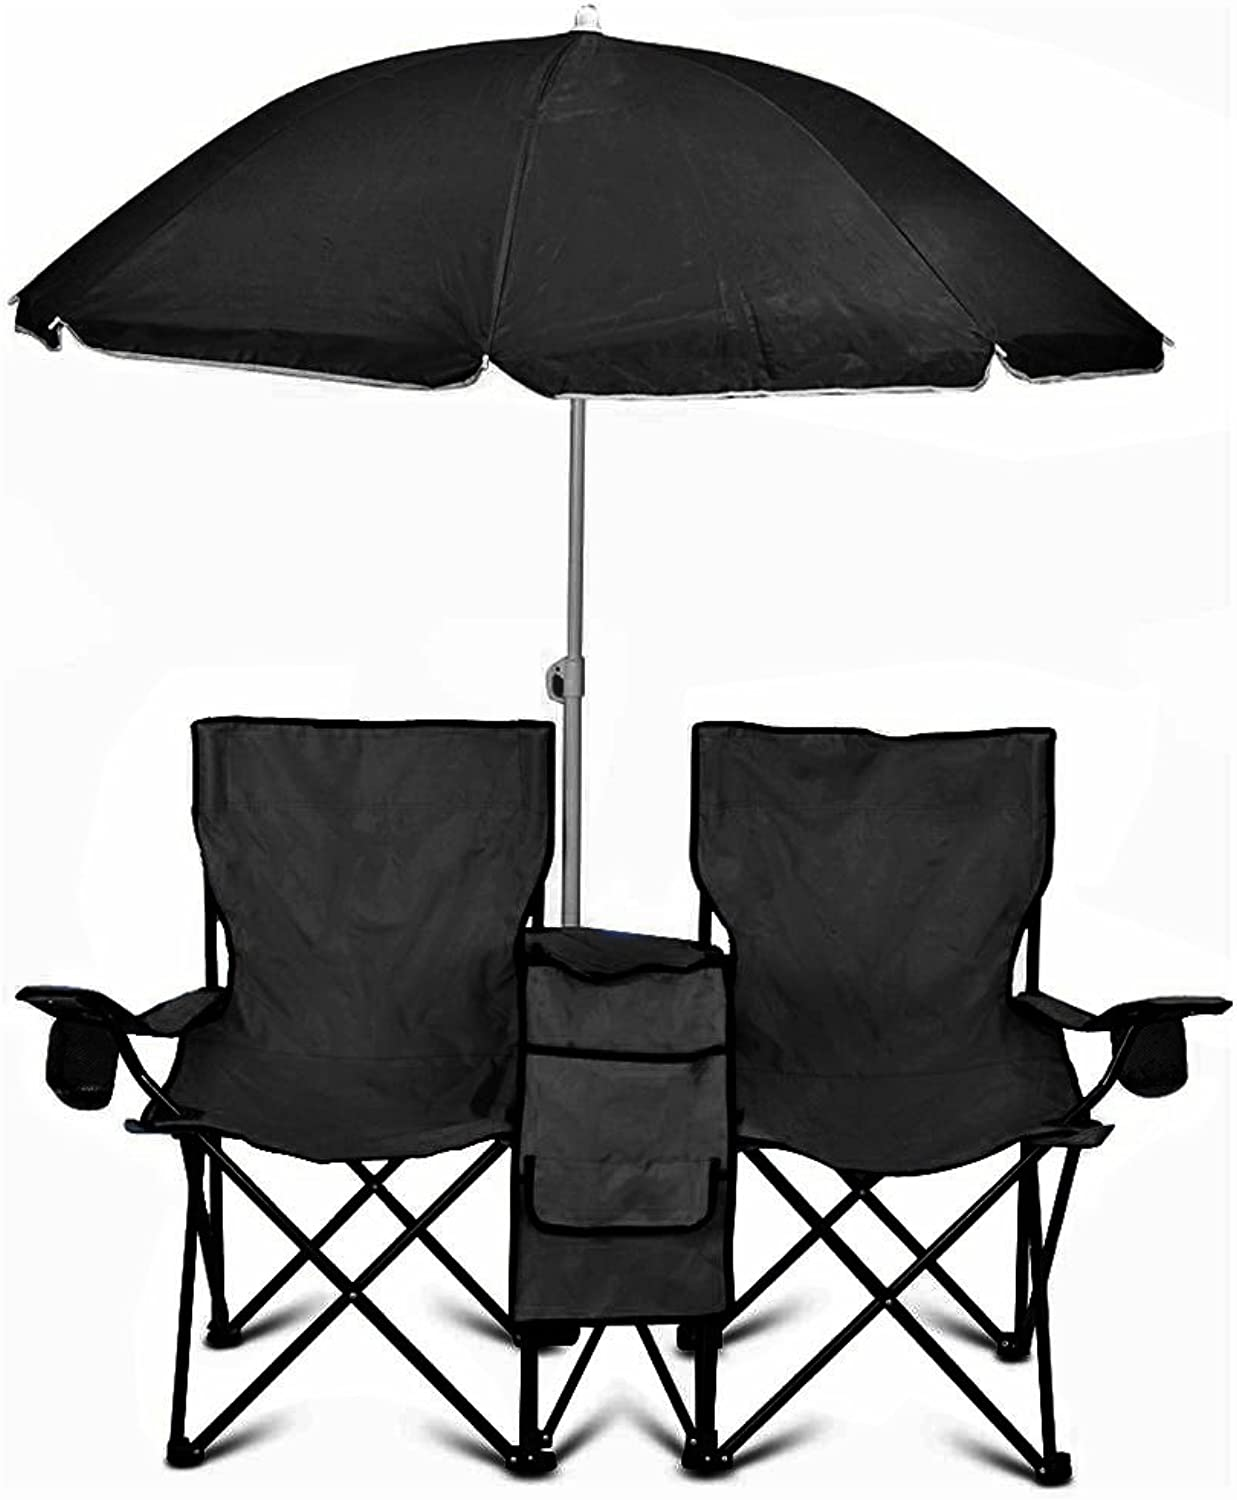 GoTeam Portable Double Folding Chair w Removable Umbrella, Cooler Bag and Carry Case - Black